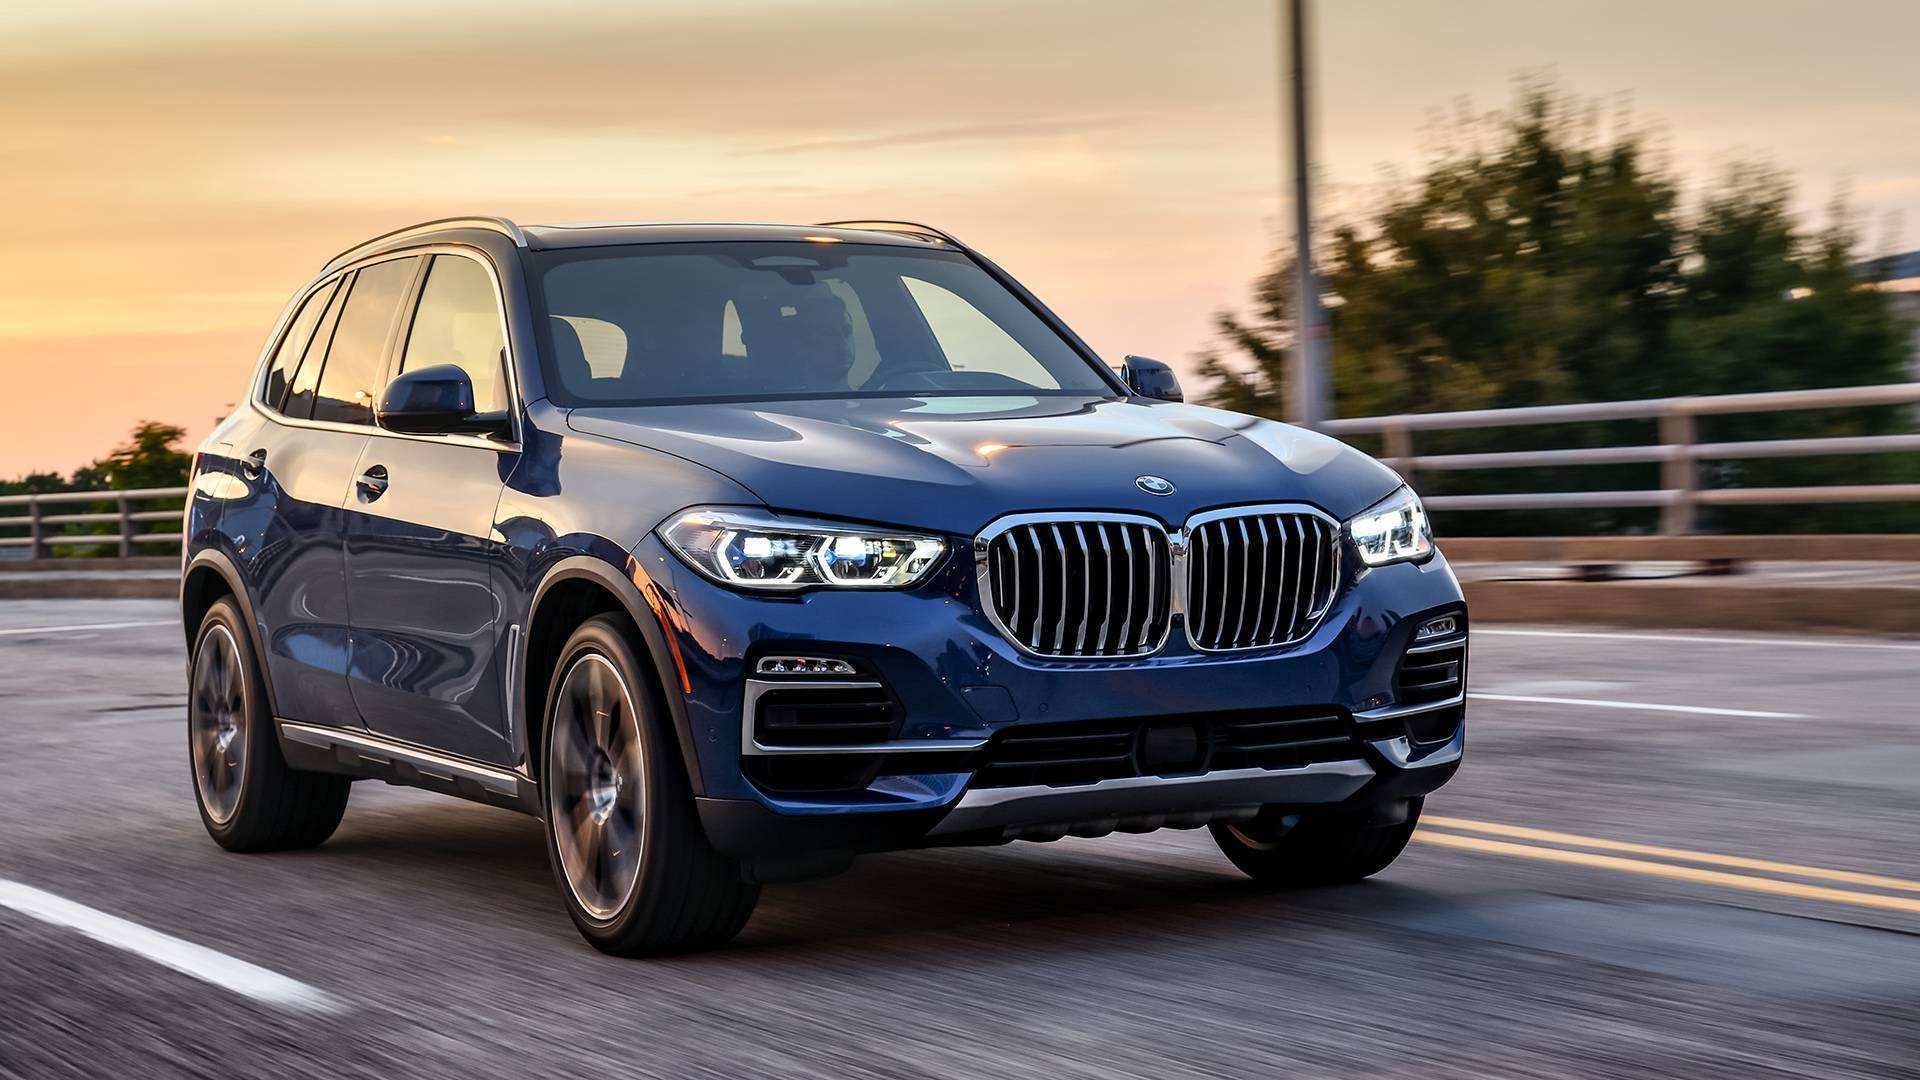 43 Great Bmw X5 2019 Pictures by Bmw X5 2019